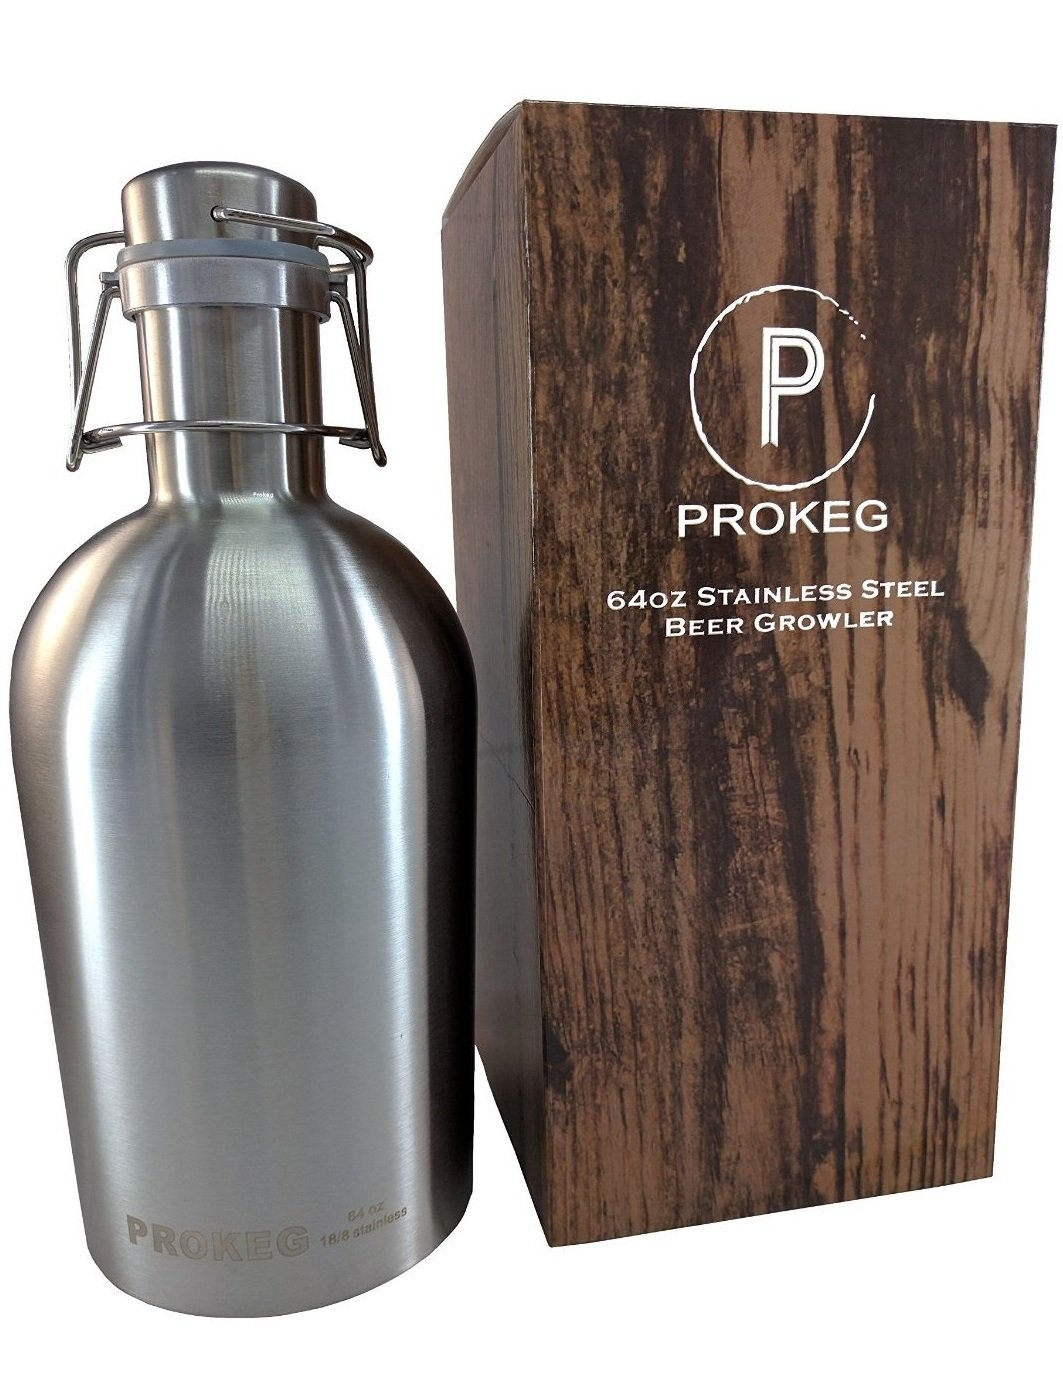 PROKEG - Stainless Steel Beer Growler 64oz 2L Flip Top Single Wall PREMIUM Growlers